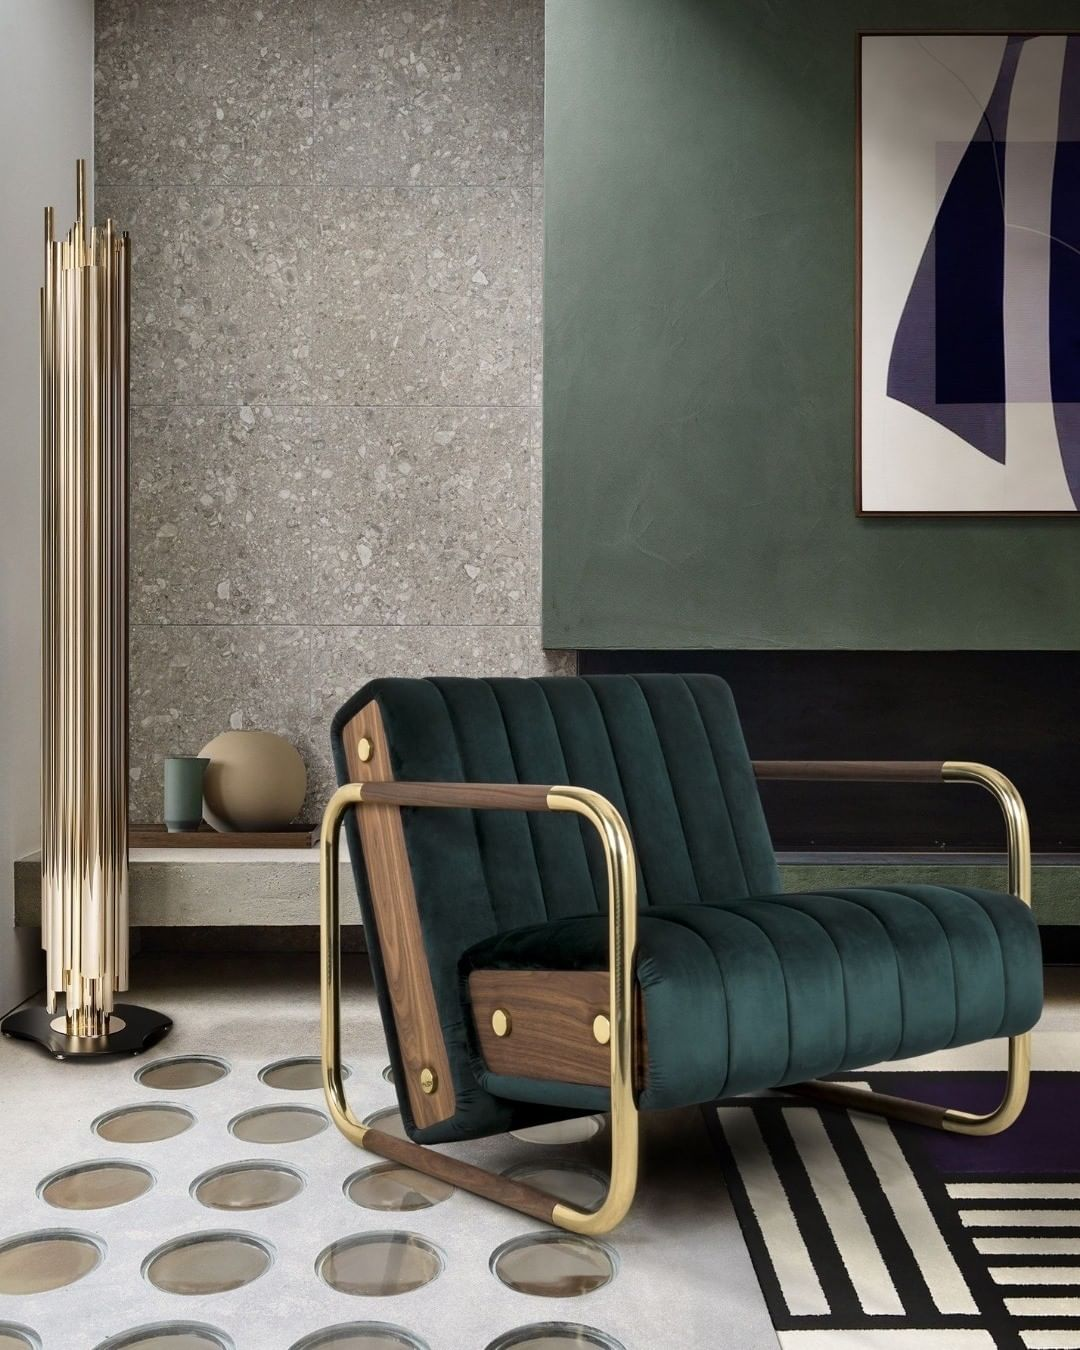 TRANSFORME YOUR LIVING ROOM WITH BRUBECK